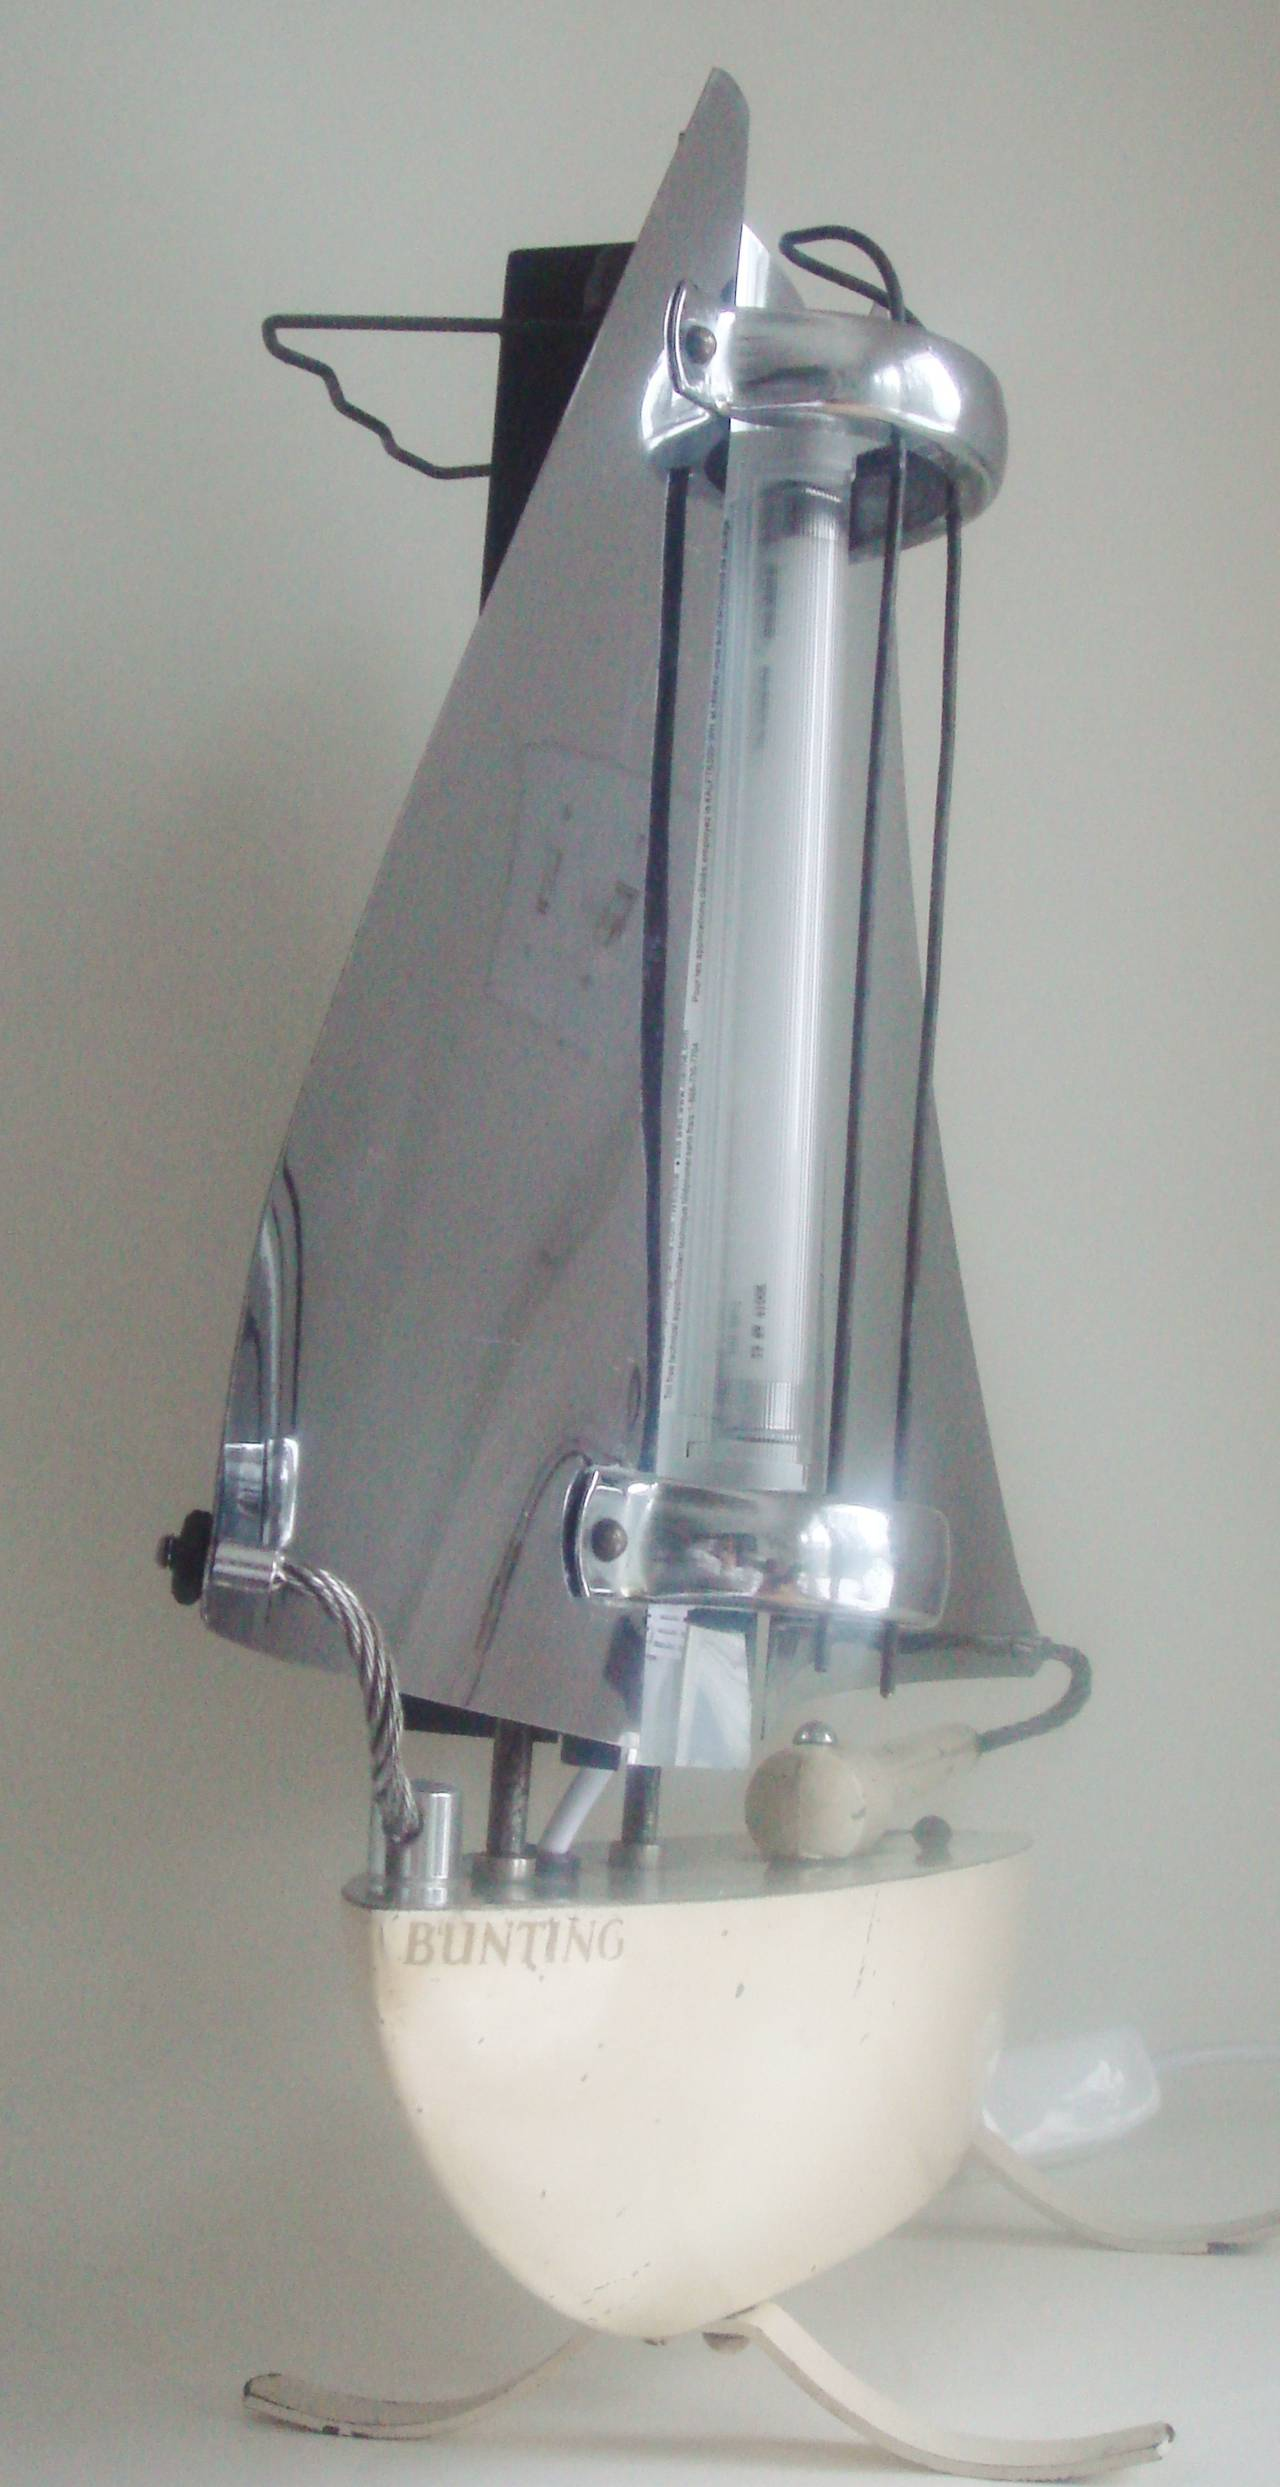 Mid-20th Century Iconic English Art Deco Bunting Figural Yacht Floor Lamp Conversion. For Sale